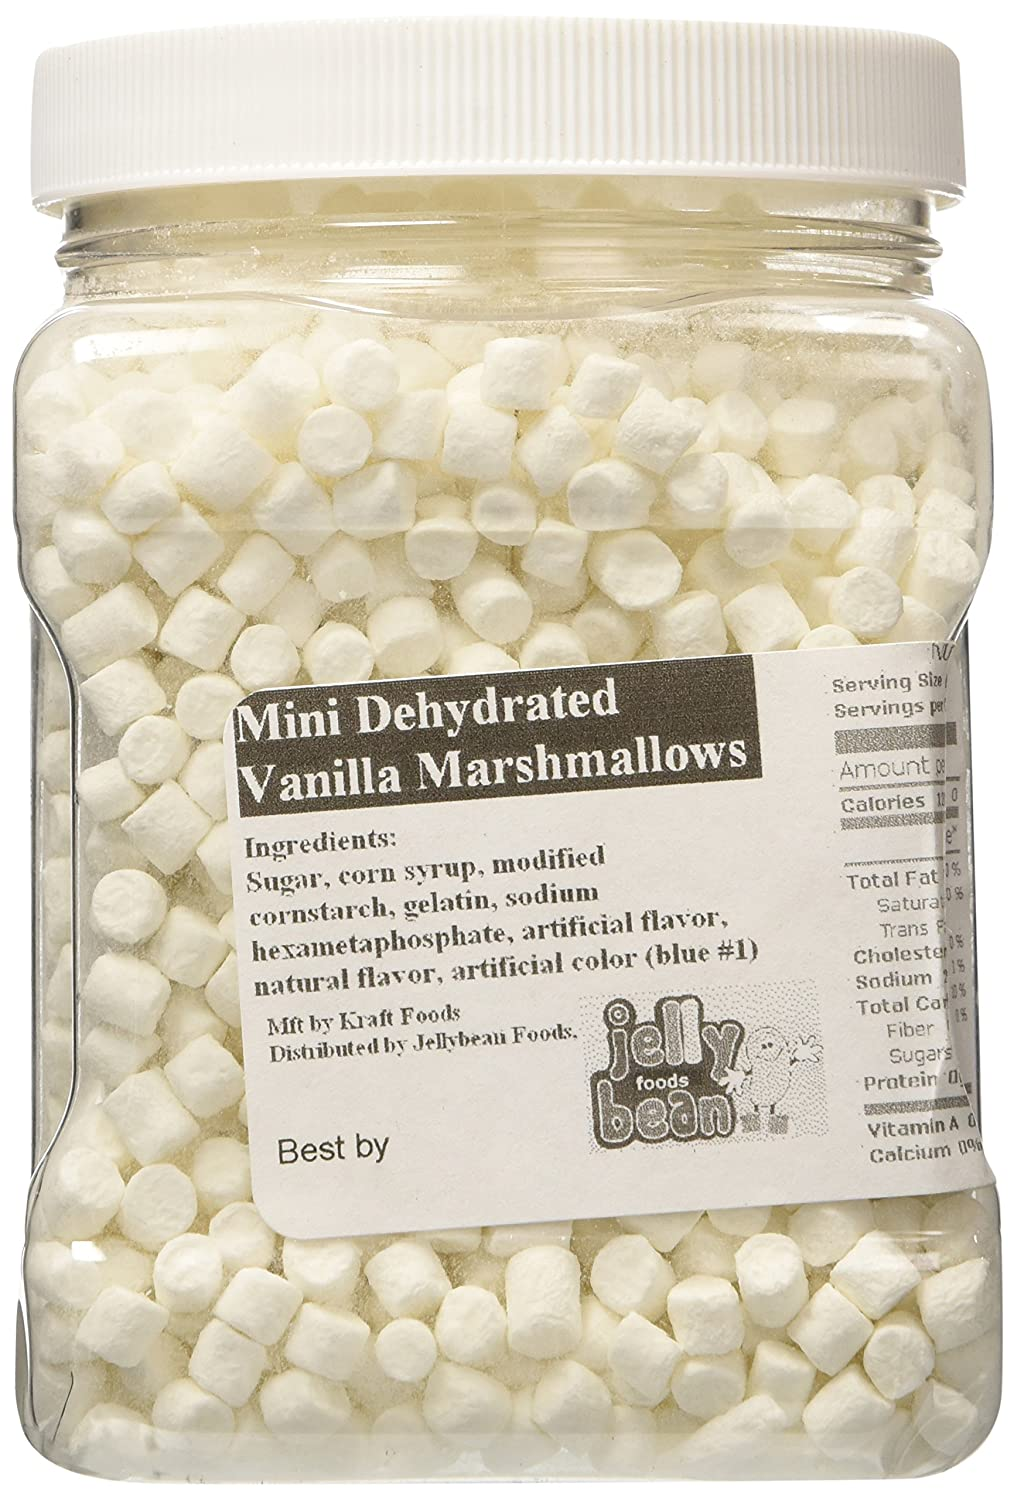 Mini Dehydrated Marshmallows 5 Oz.